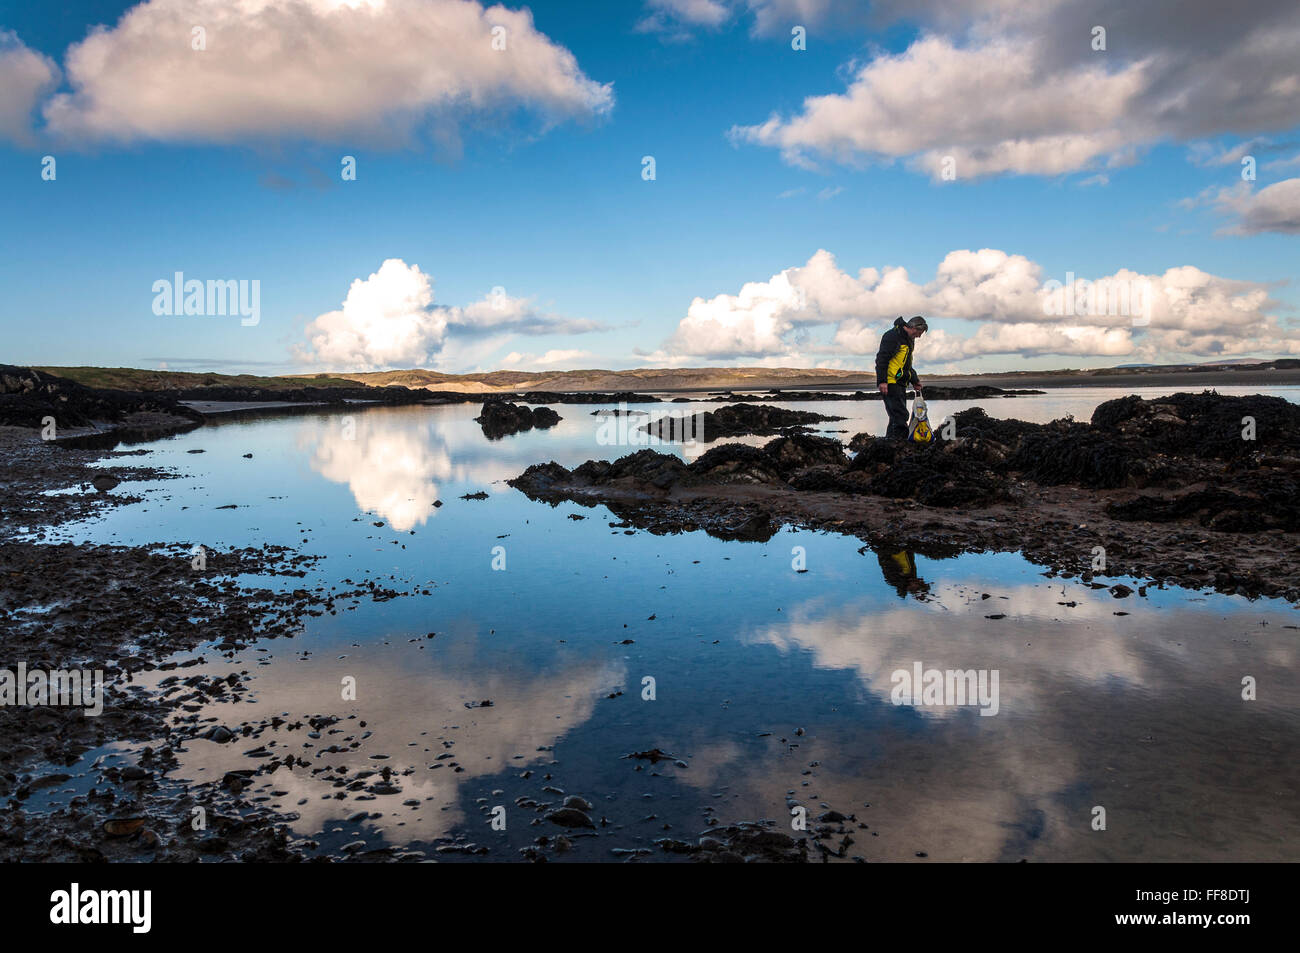 Ardara, County Donegal, Ireland. February 11th 2016. A man collects mussels on a calm day on Ireland's west - Stock Image